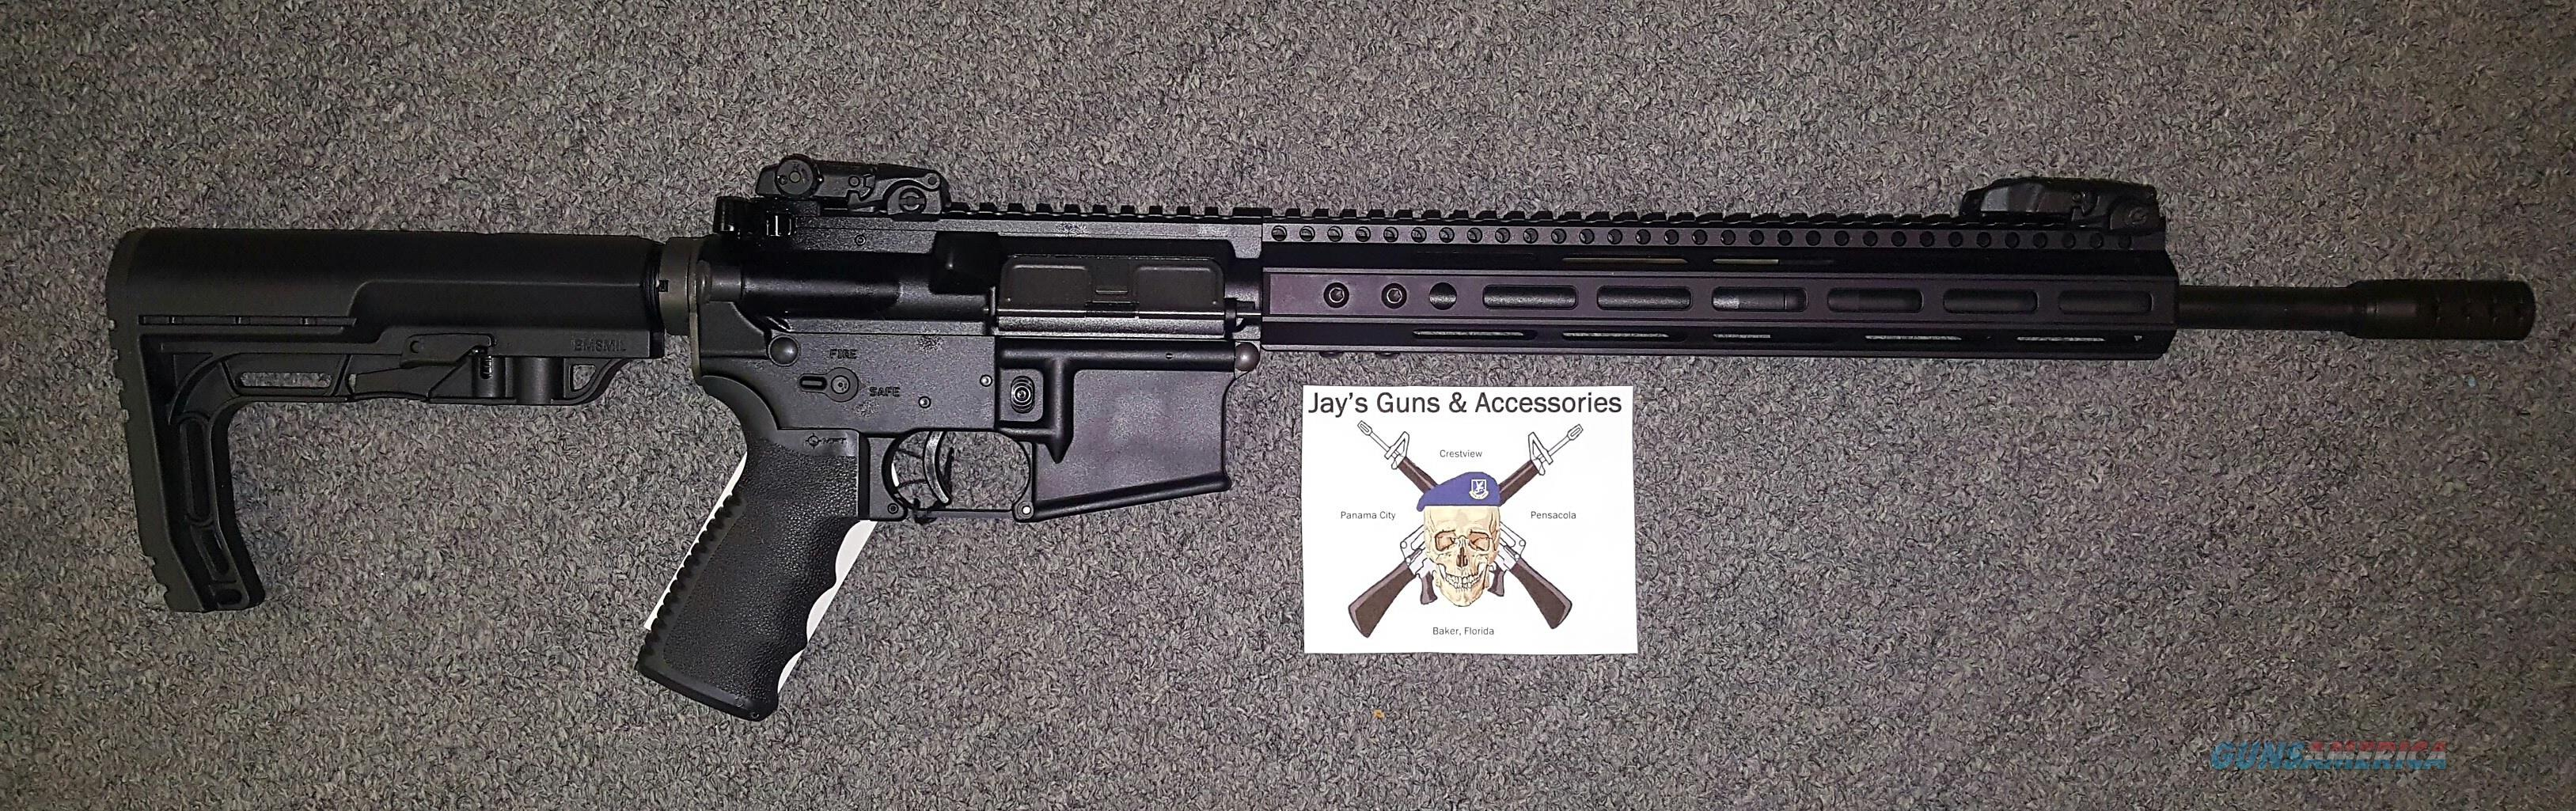 Franklin Armory HSC-15  Guns > Rifles > AR-15 Rifles - Small Manufacturers > Complete Rifle